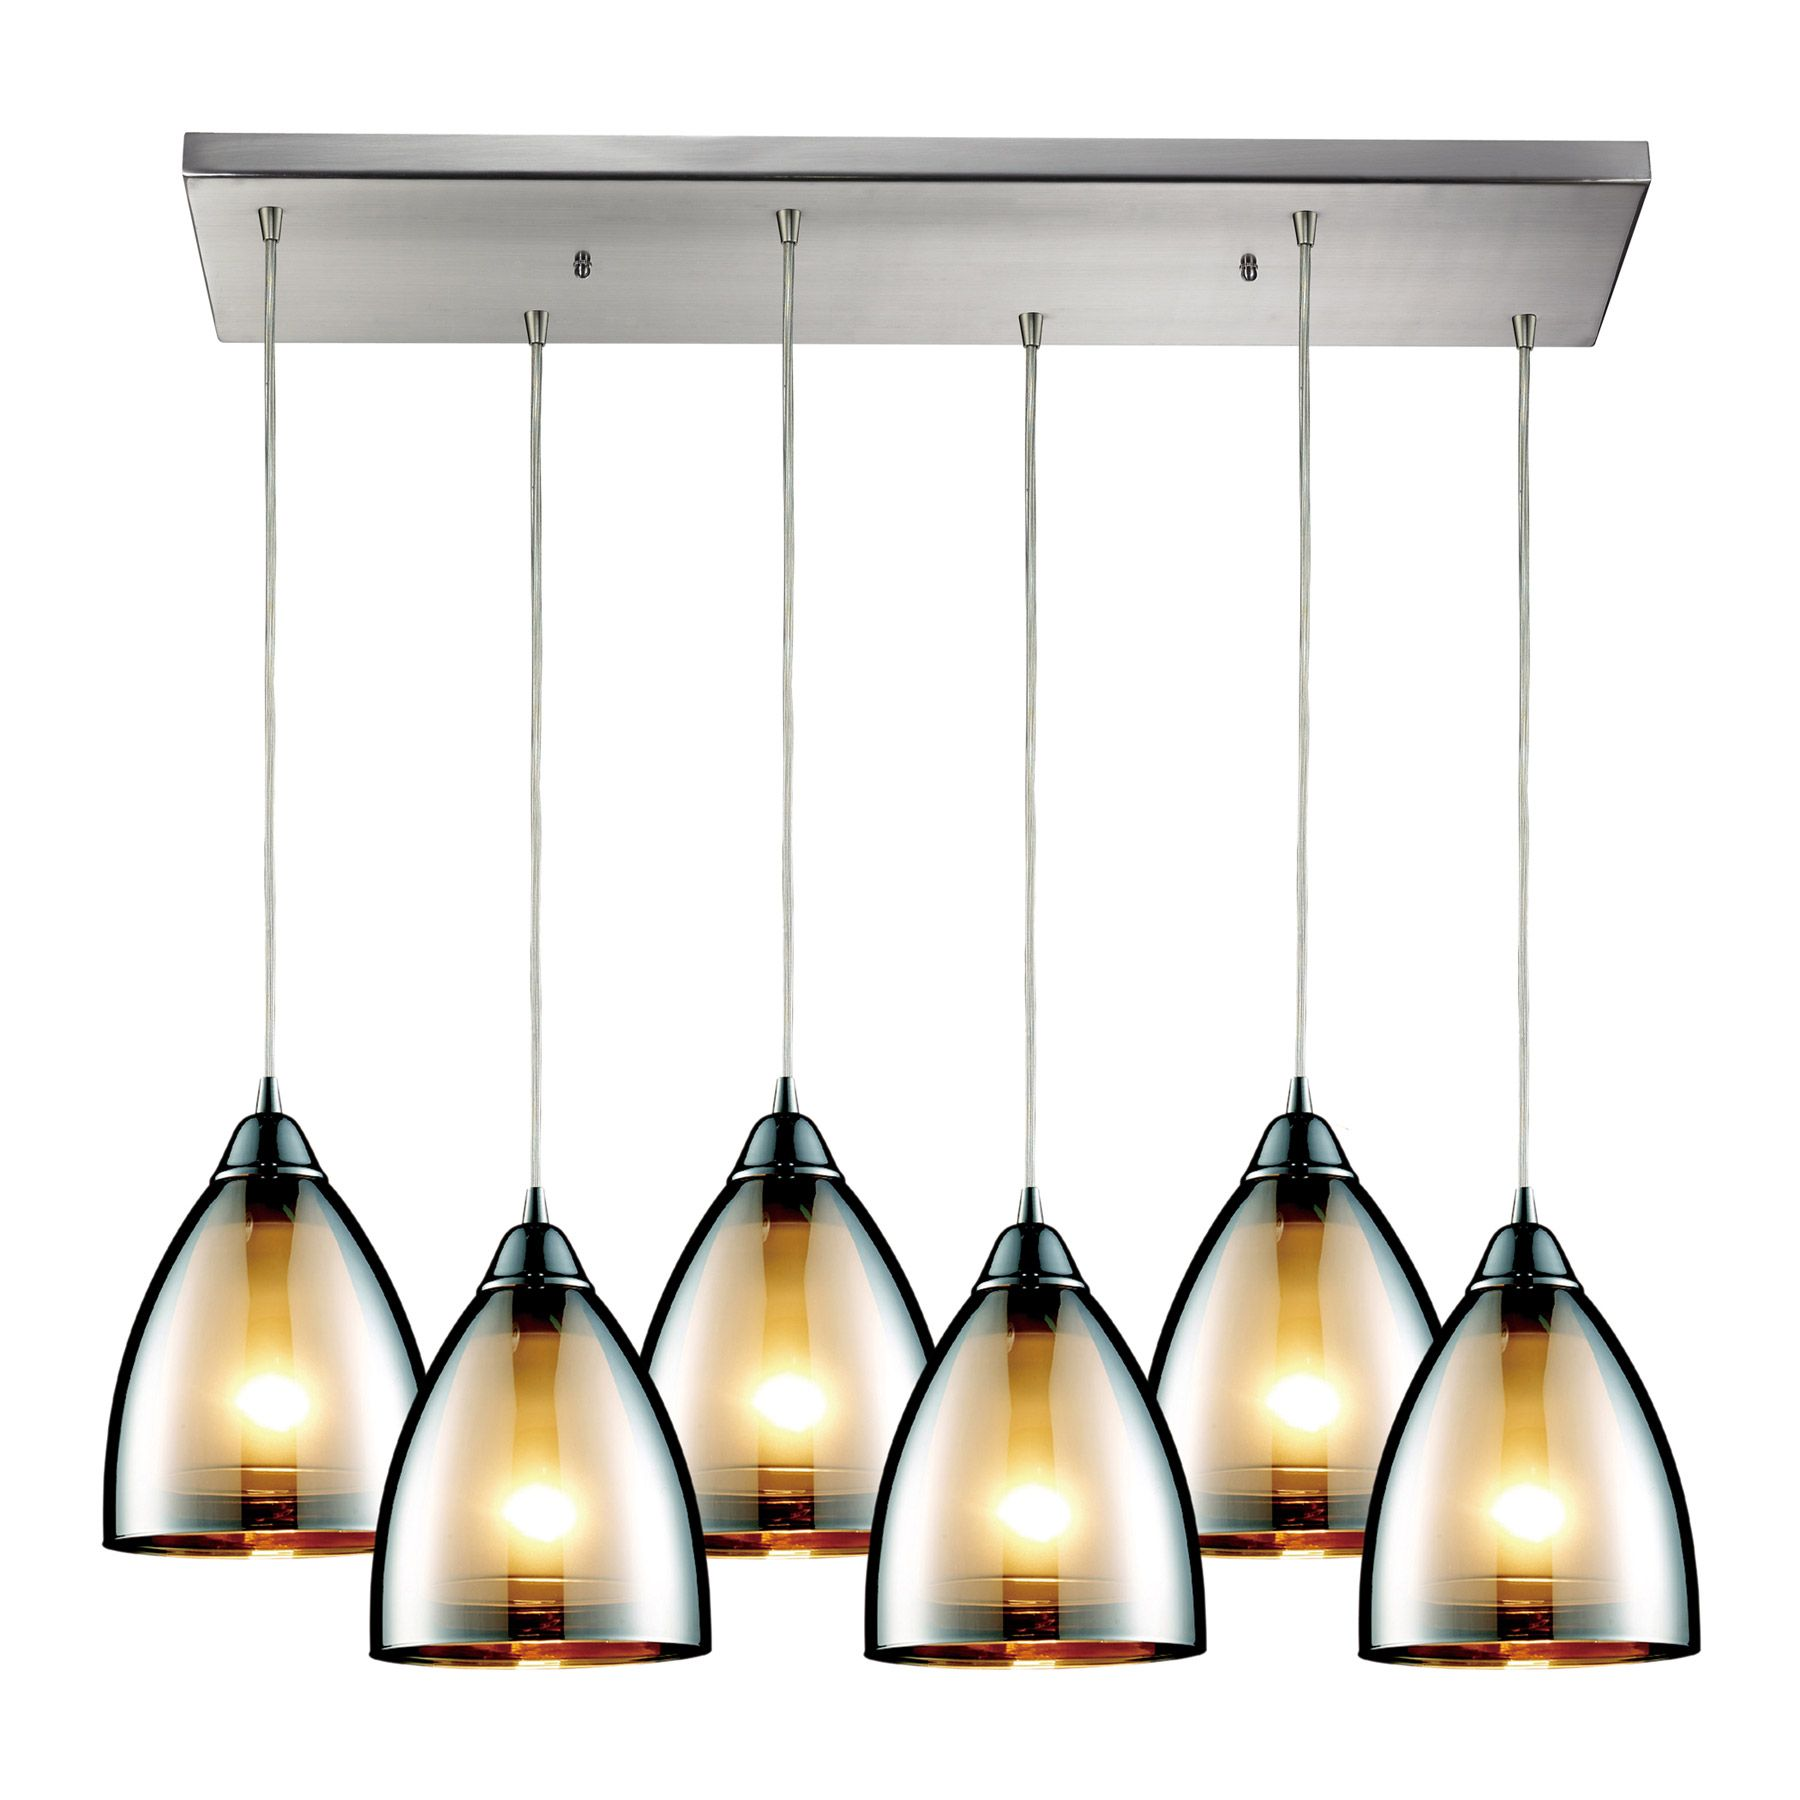 Elk Lighting Fixtures 10073 6rc Reflections 6 Light Multi Pendant Ceiling